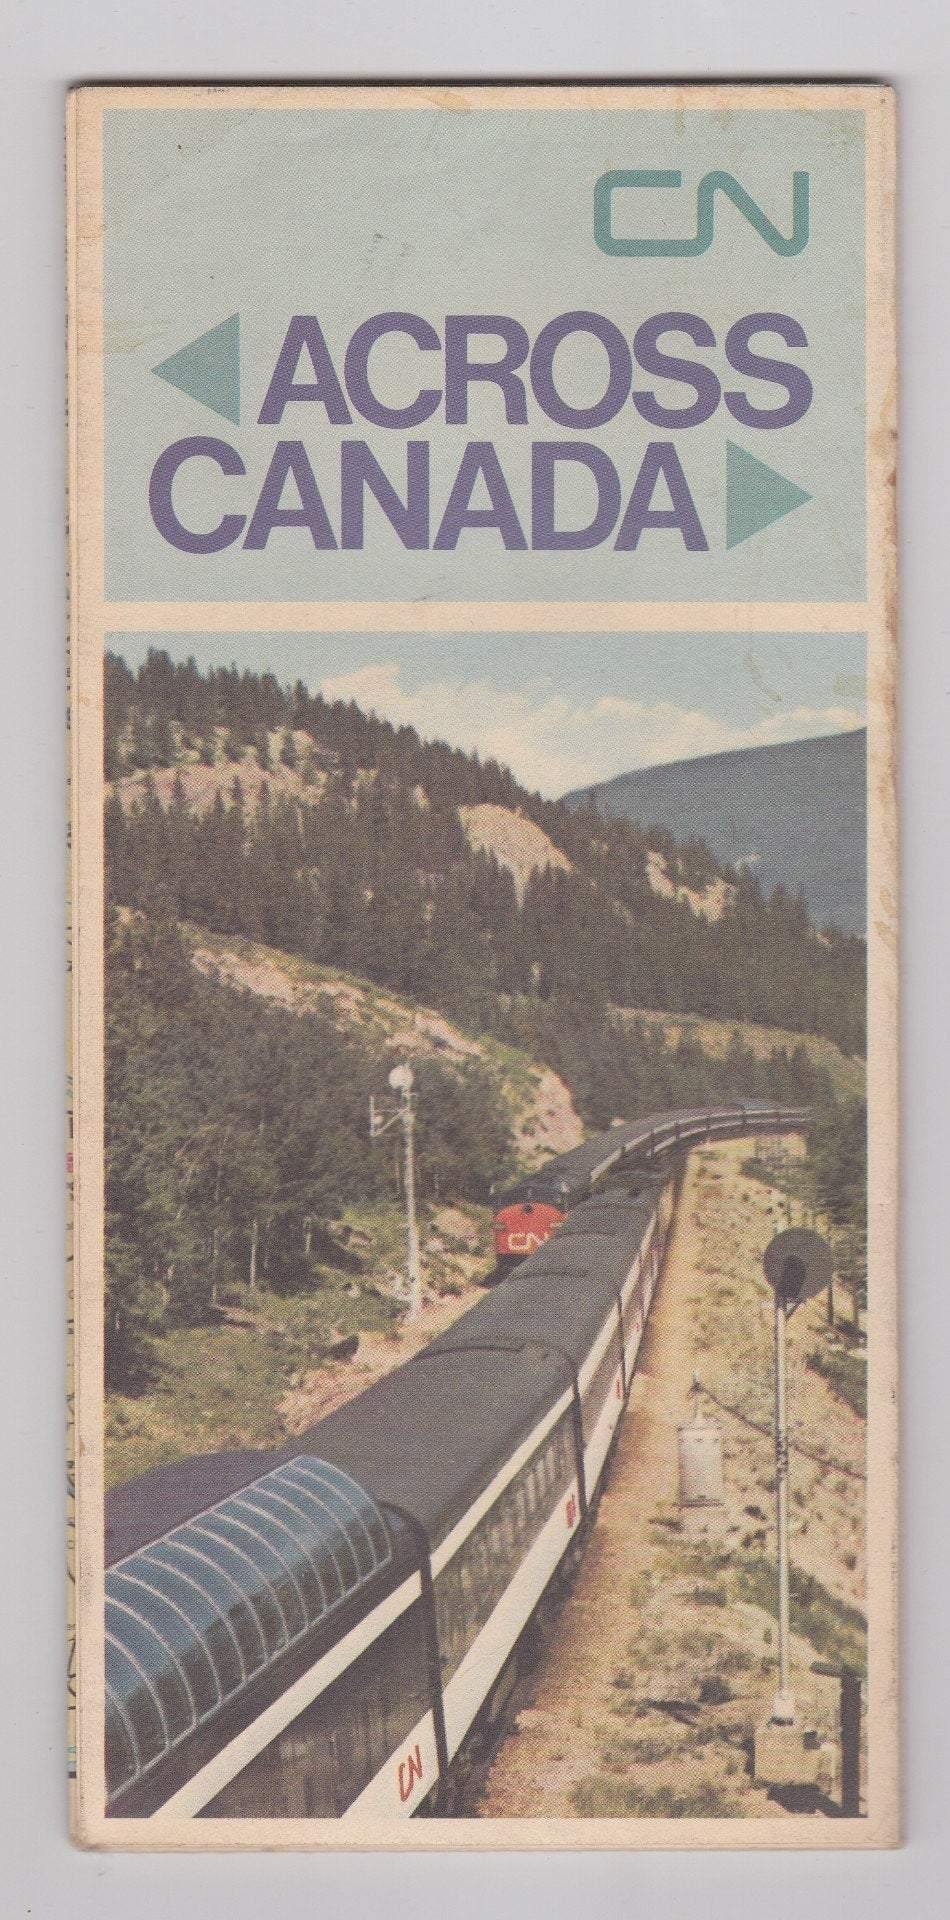 CN Across Canada 1969 Canadian National Railways Railroad Map Brochure